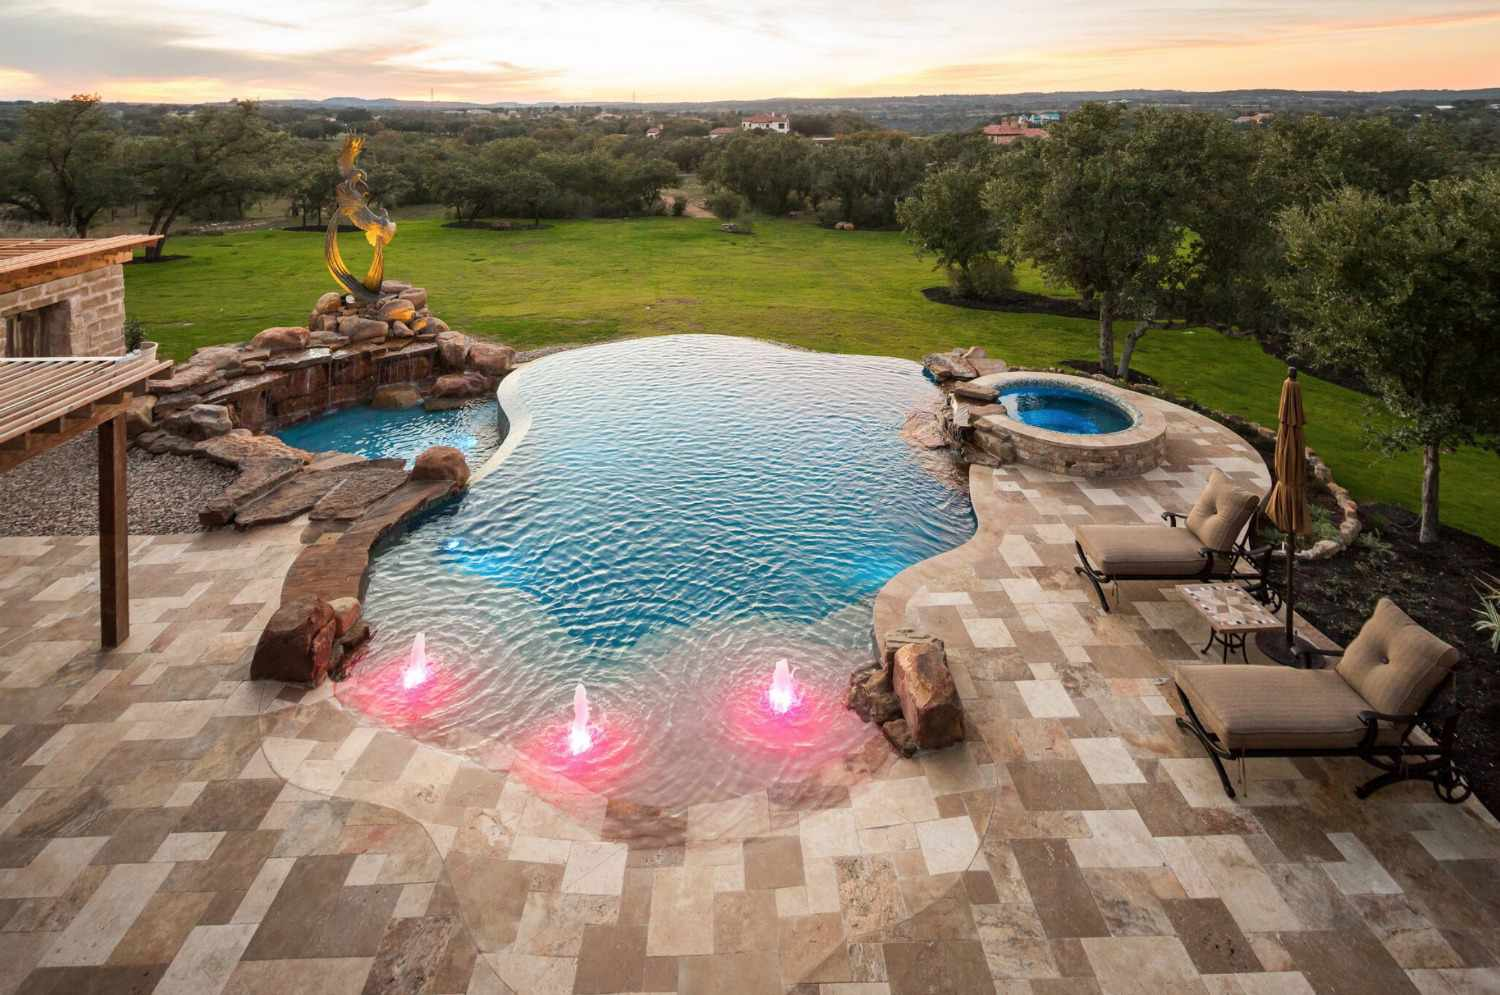 Swimming pool with pink lights